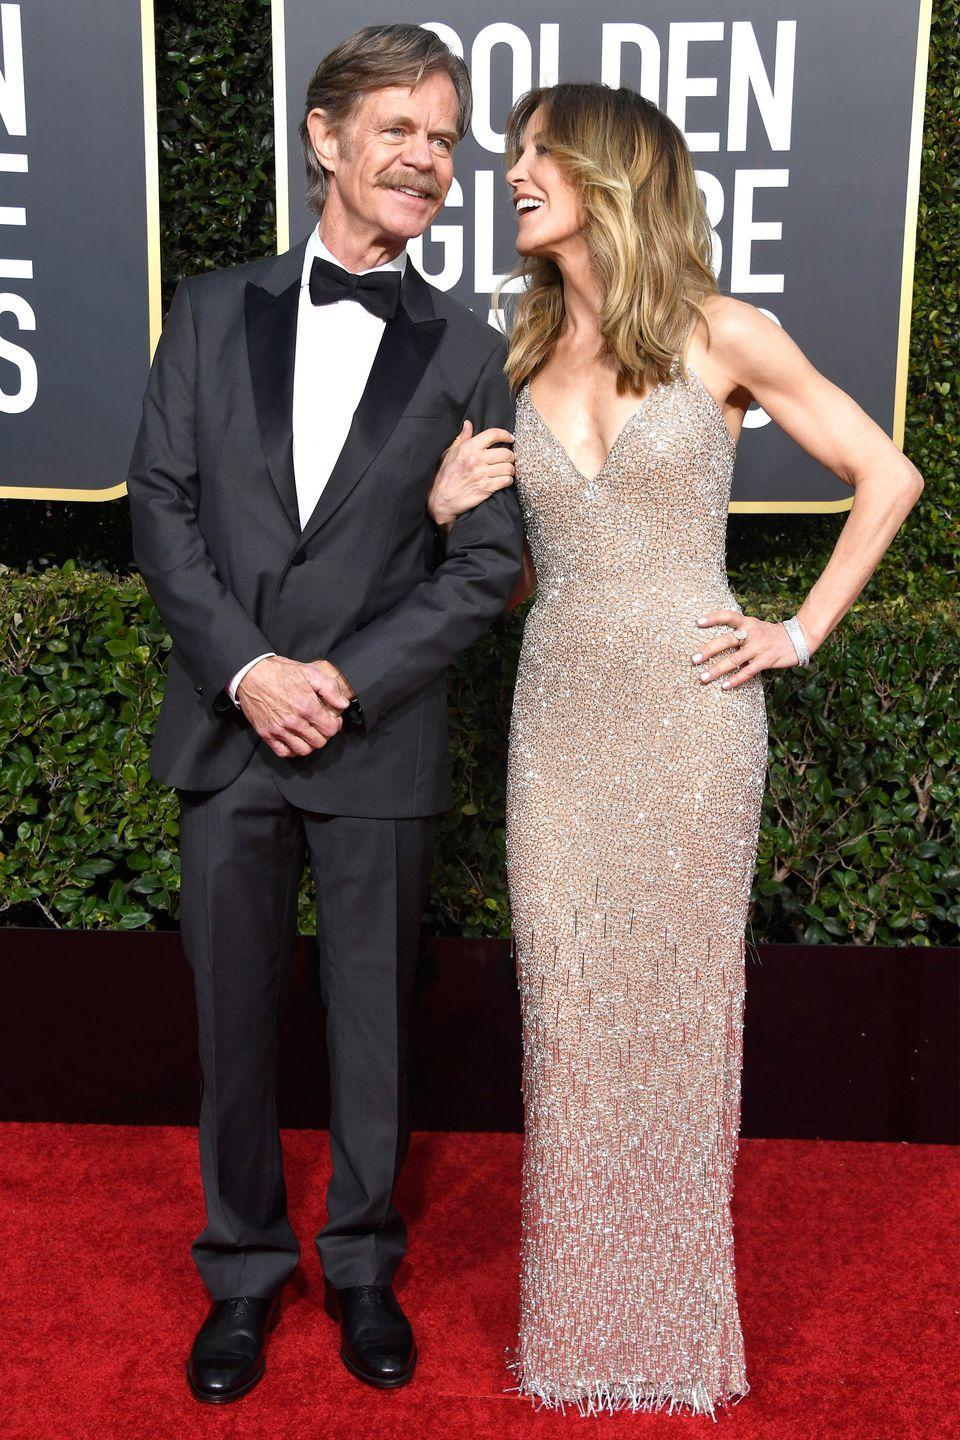 "<p><em>Desperate Housewives</em> actress Felicity Huffman and <em>Shameless </em>actor William H. Macy dated on-and-off for 15 years before finally marrying in 1997. H. Macy was 47, and Huffman was 35. ""I was so scared of marriage that I thought I would've preferred to step in front of a bus,"" Huffman told <a href=""http://triblive.com/aande/movies/7835836-74/says-lazy-huffman#axzz3SfMNYMQ7"" rel=""nofollow noopener"" target=""_blank"" data-ylk=""slk:Tribune News"" class=""link rapid-noclick-resp""><em>Tribune News</em></a> on her hesitation towards marriage. The couple has two daughters together. </p>"